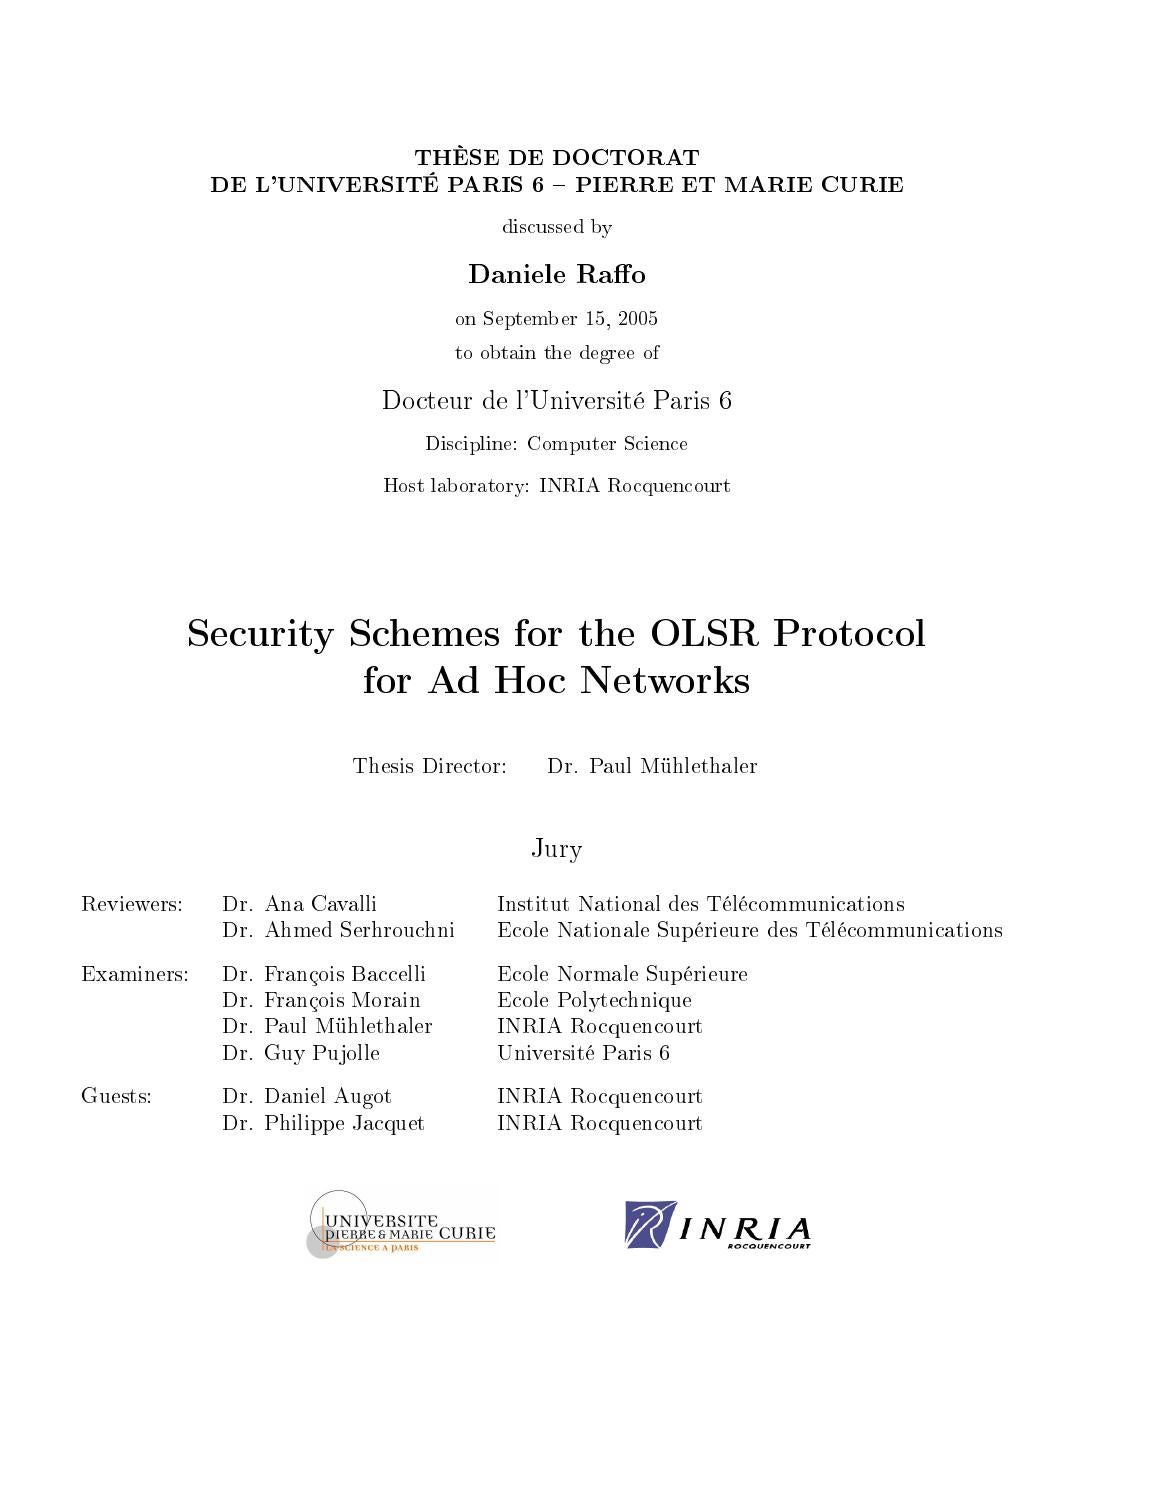 ad hoc network phd thesis Manaseer, saher (2010) on backoff mechanisms for wireless mobile ad hoc networks phd thesis, university of glasgow full text available as:.